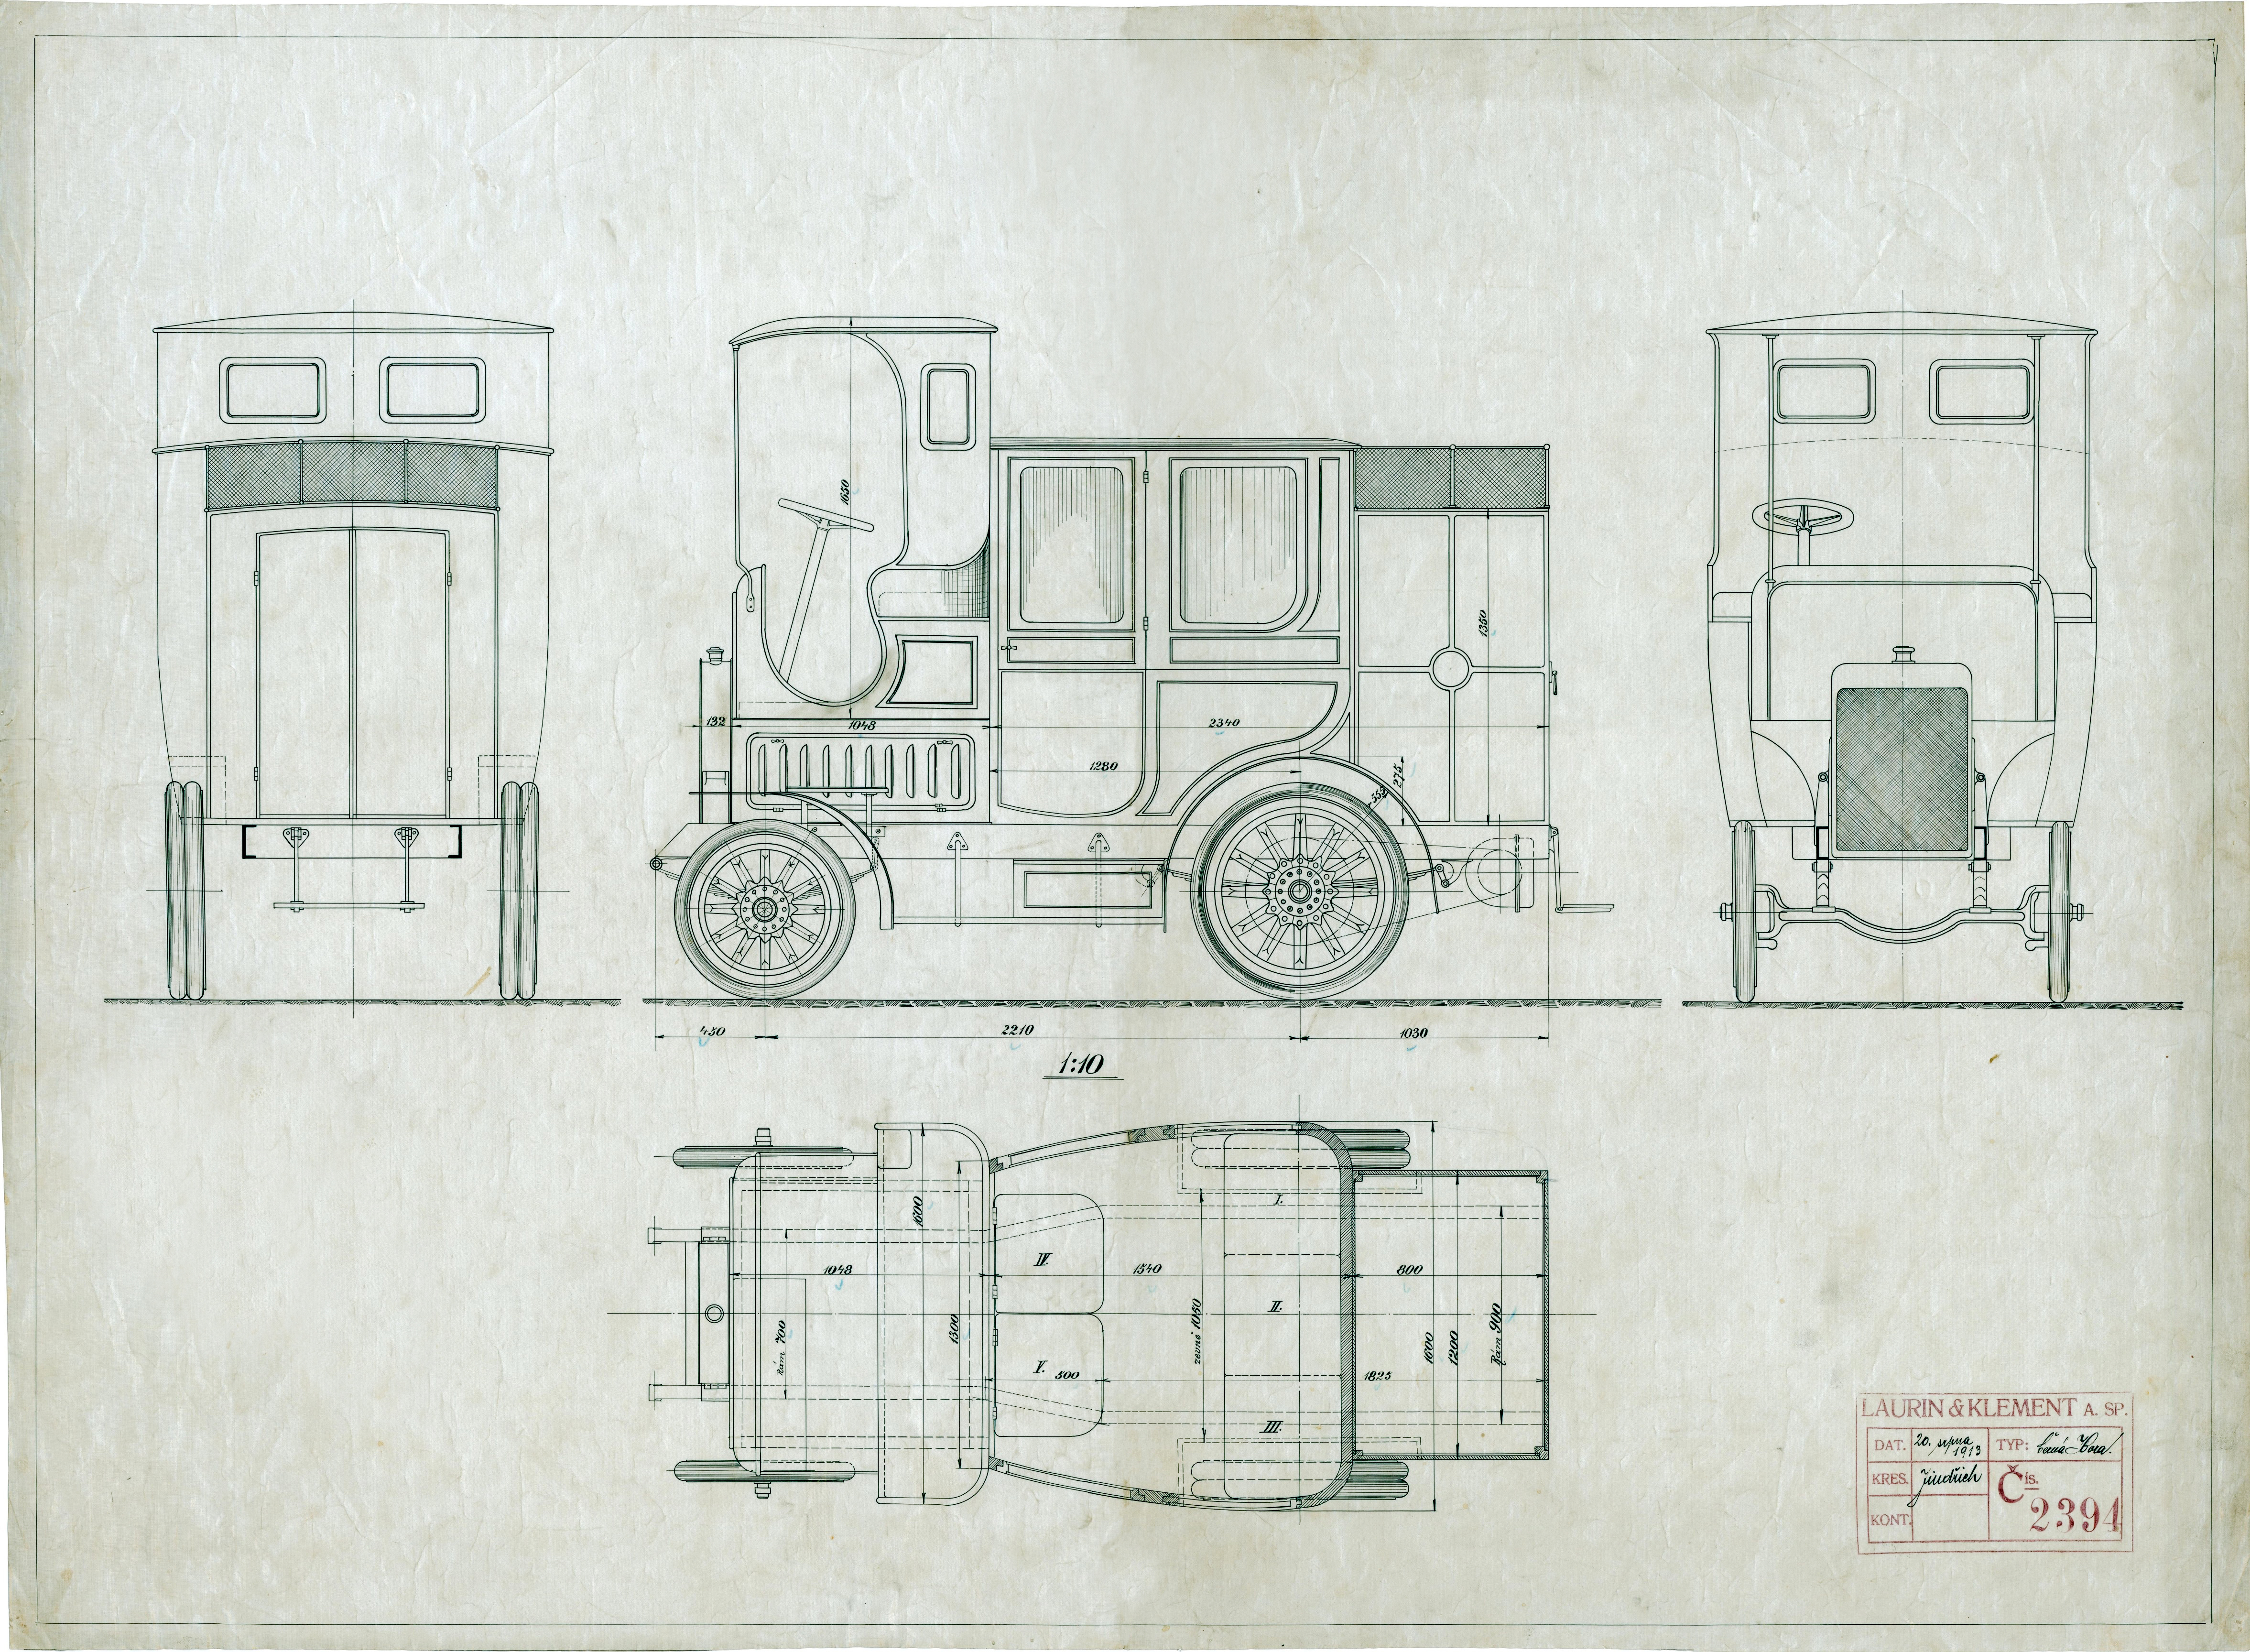 Lesser-known models from SKODA AUTO's 125-year history: The 'Černá Hora-Montenegro' buses and vans - Image 2